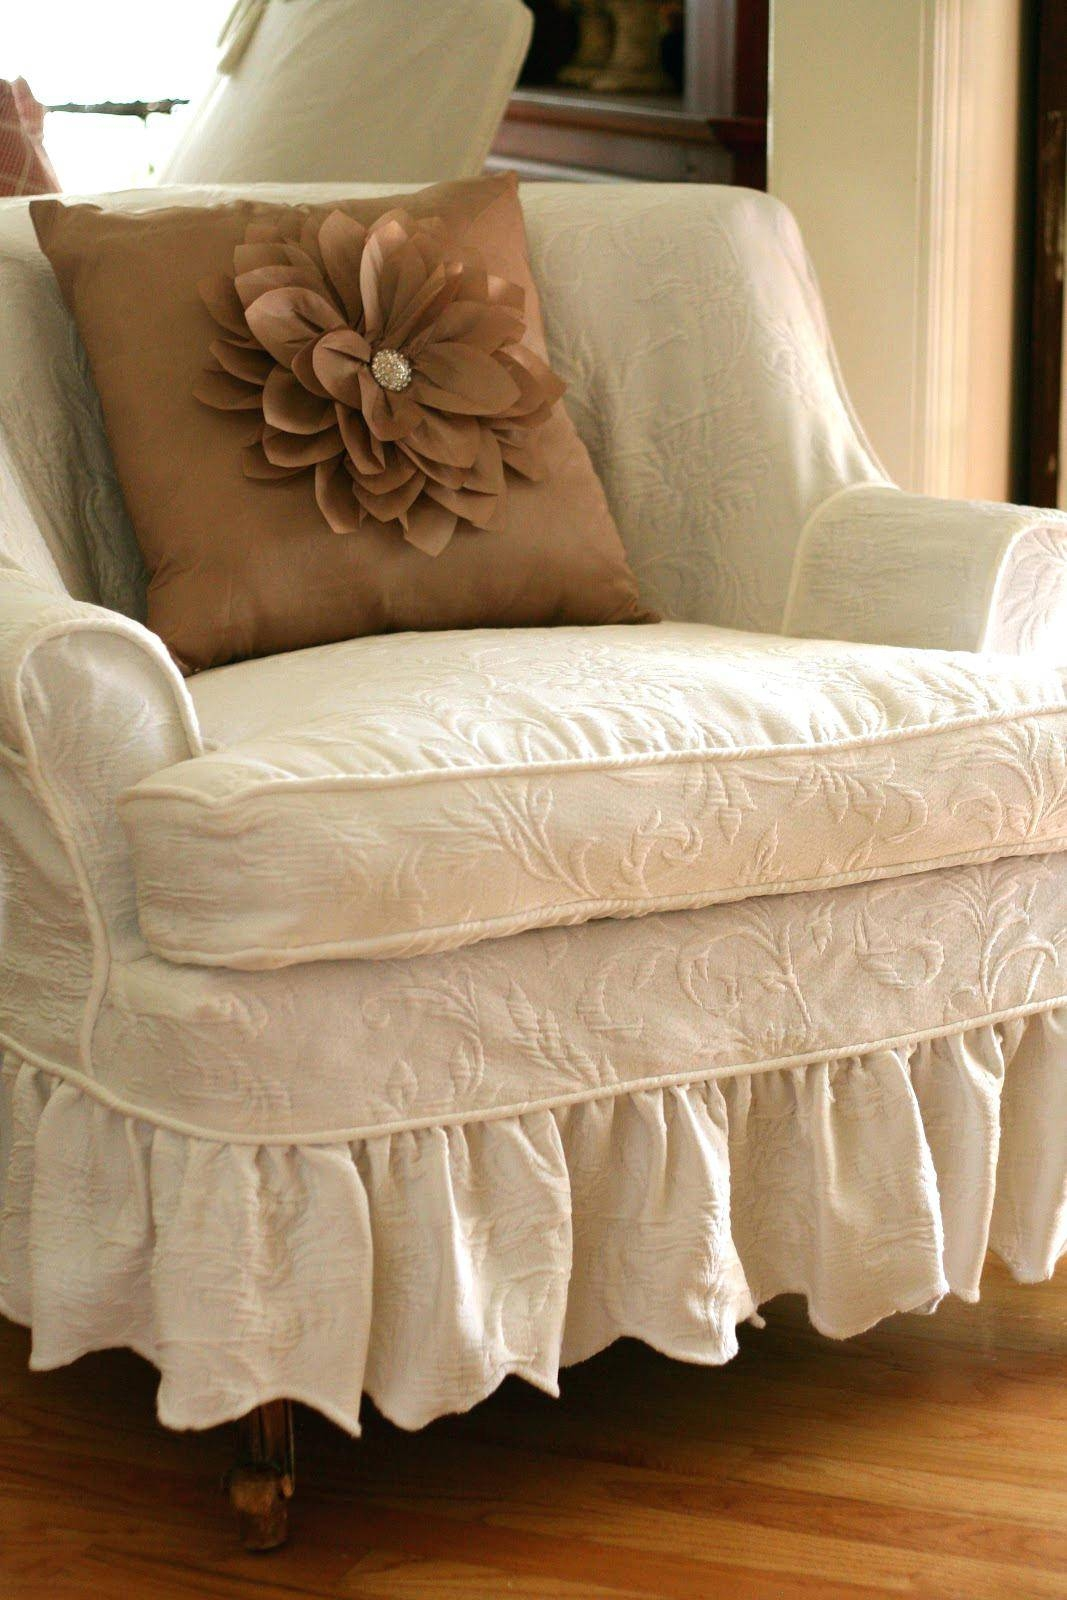 Shabby Chic Slipcovers For Wing Chairs Sale Target #2030 Gallery throughout Shabby Chic Slipcovers (Image 10 of 15)